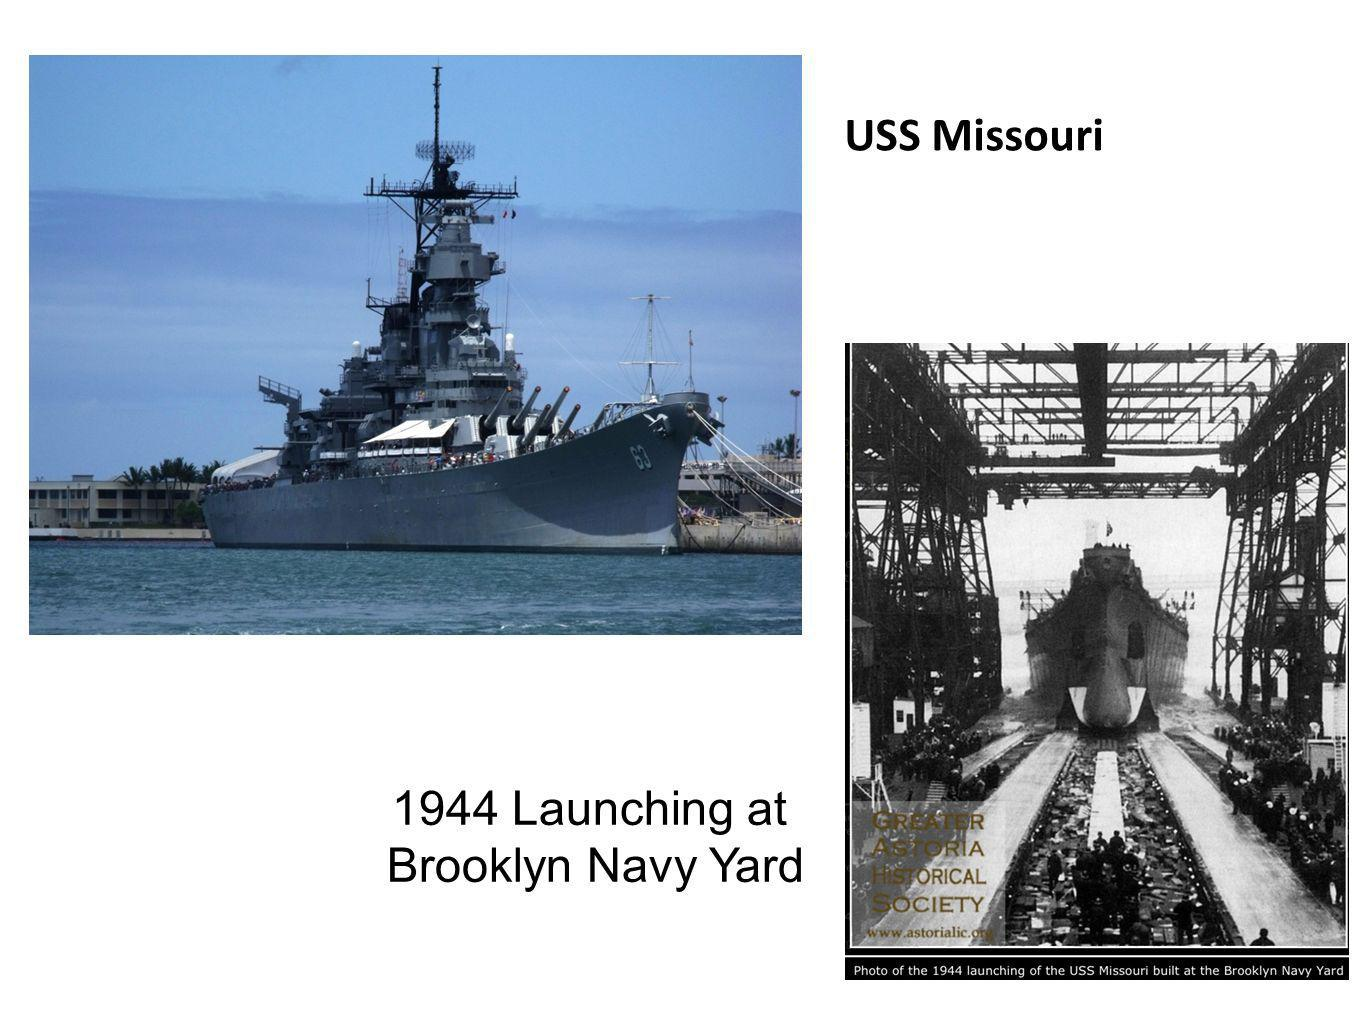 USS Missouri 1944 Launching at Brooklyn Navy Yard